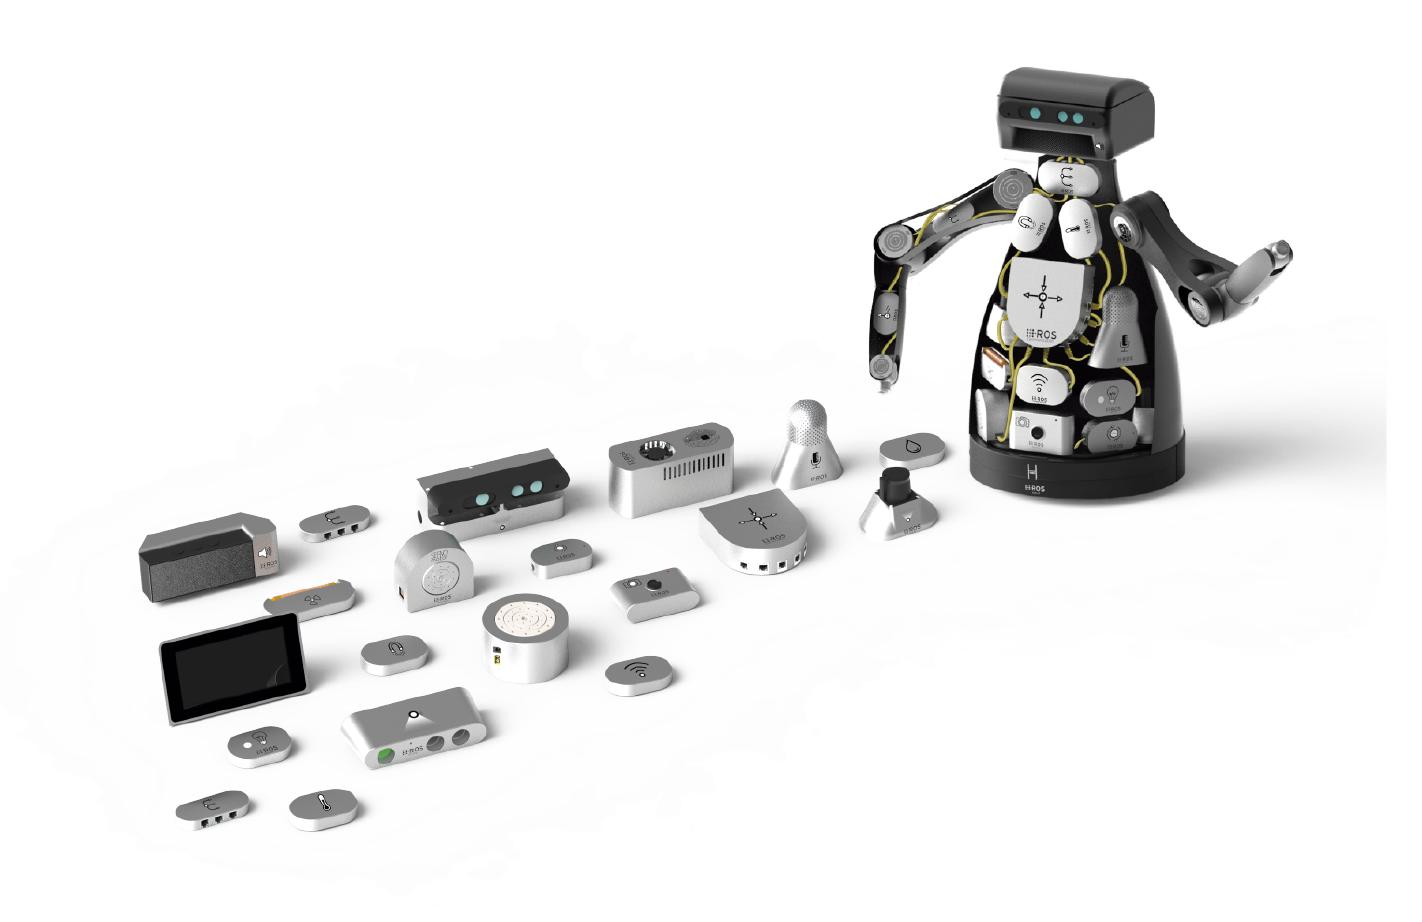 Announcing H-ROS: the Hardware Robot Operating System - By